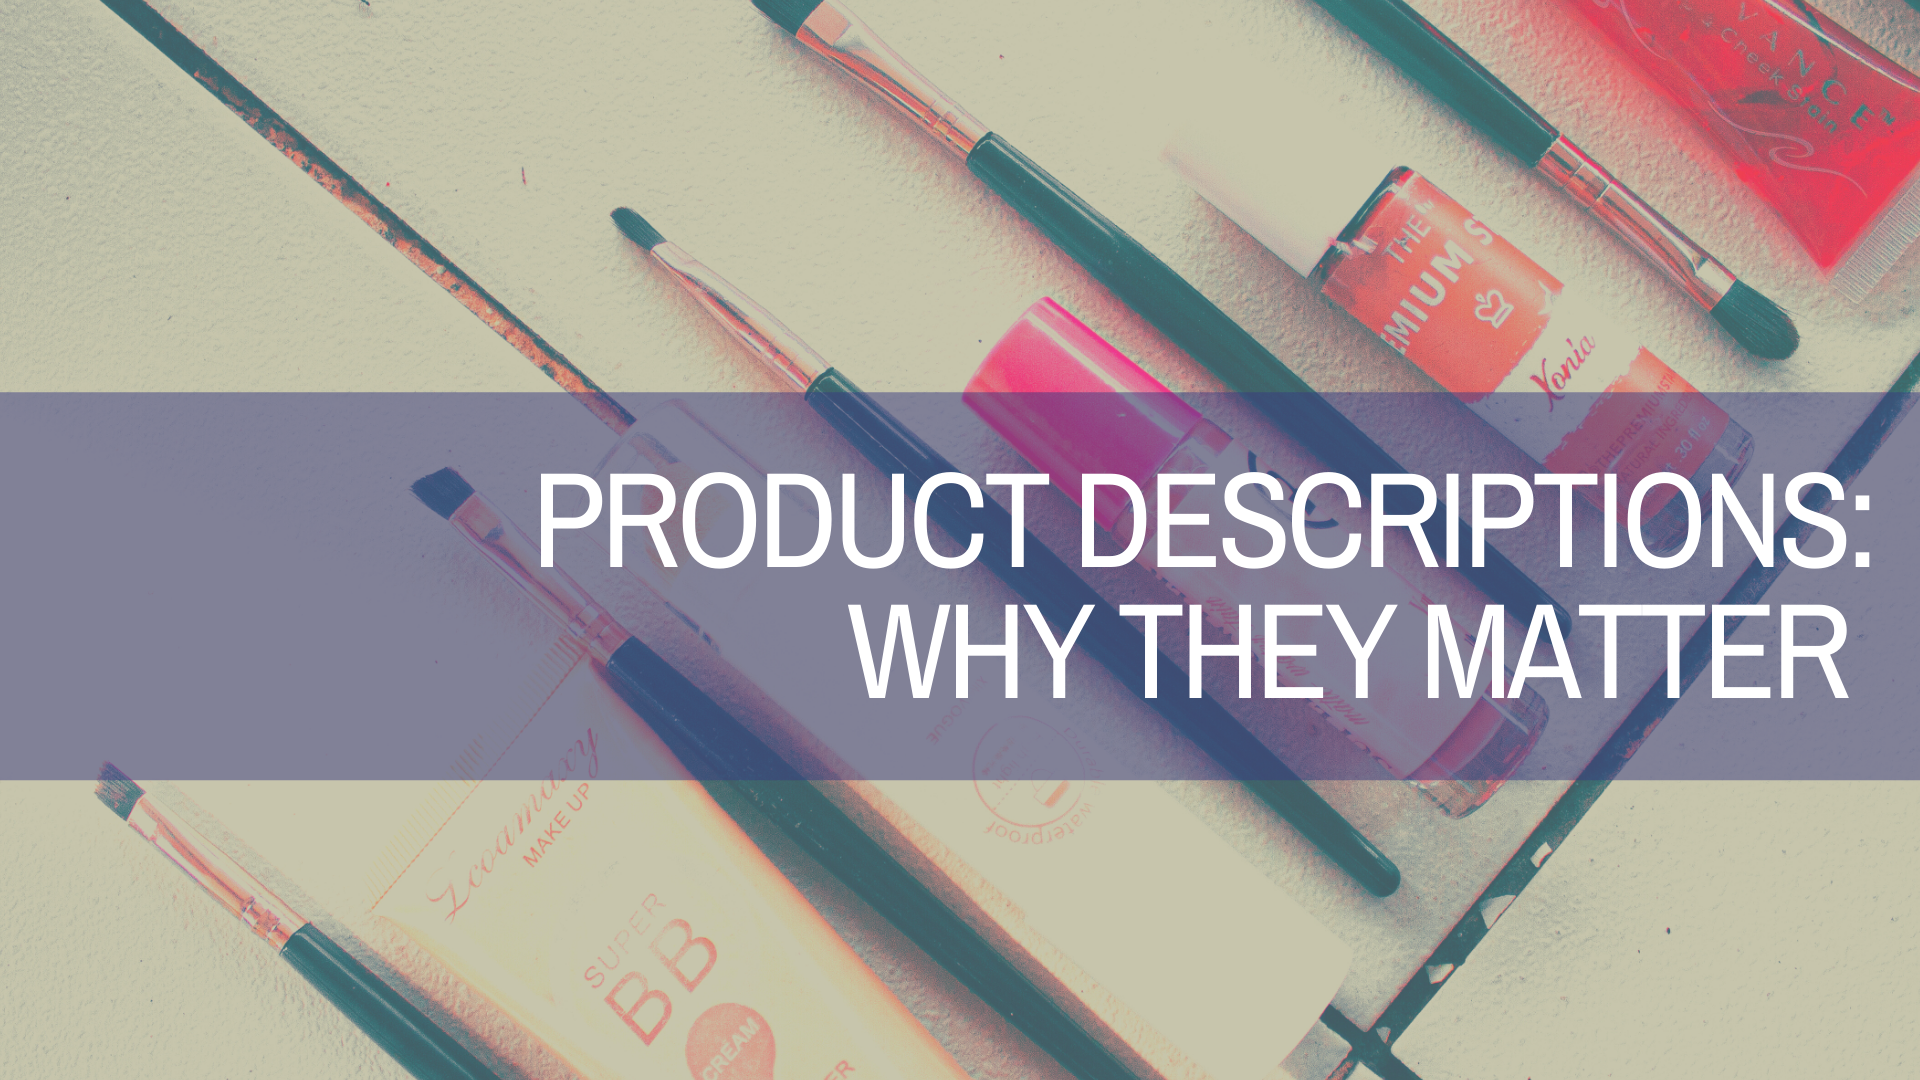 How Powerful are Your Product Descriptions?